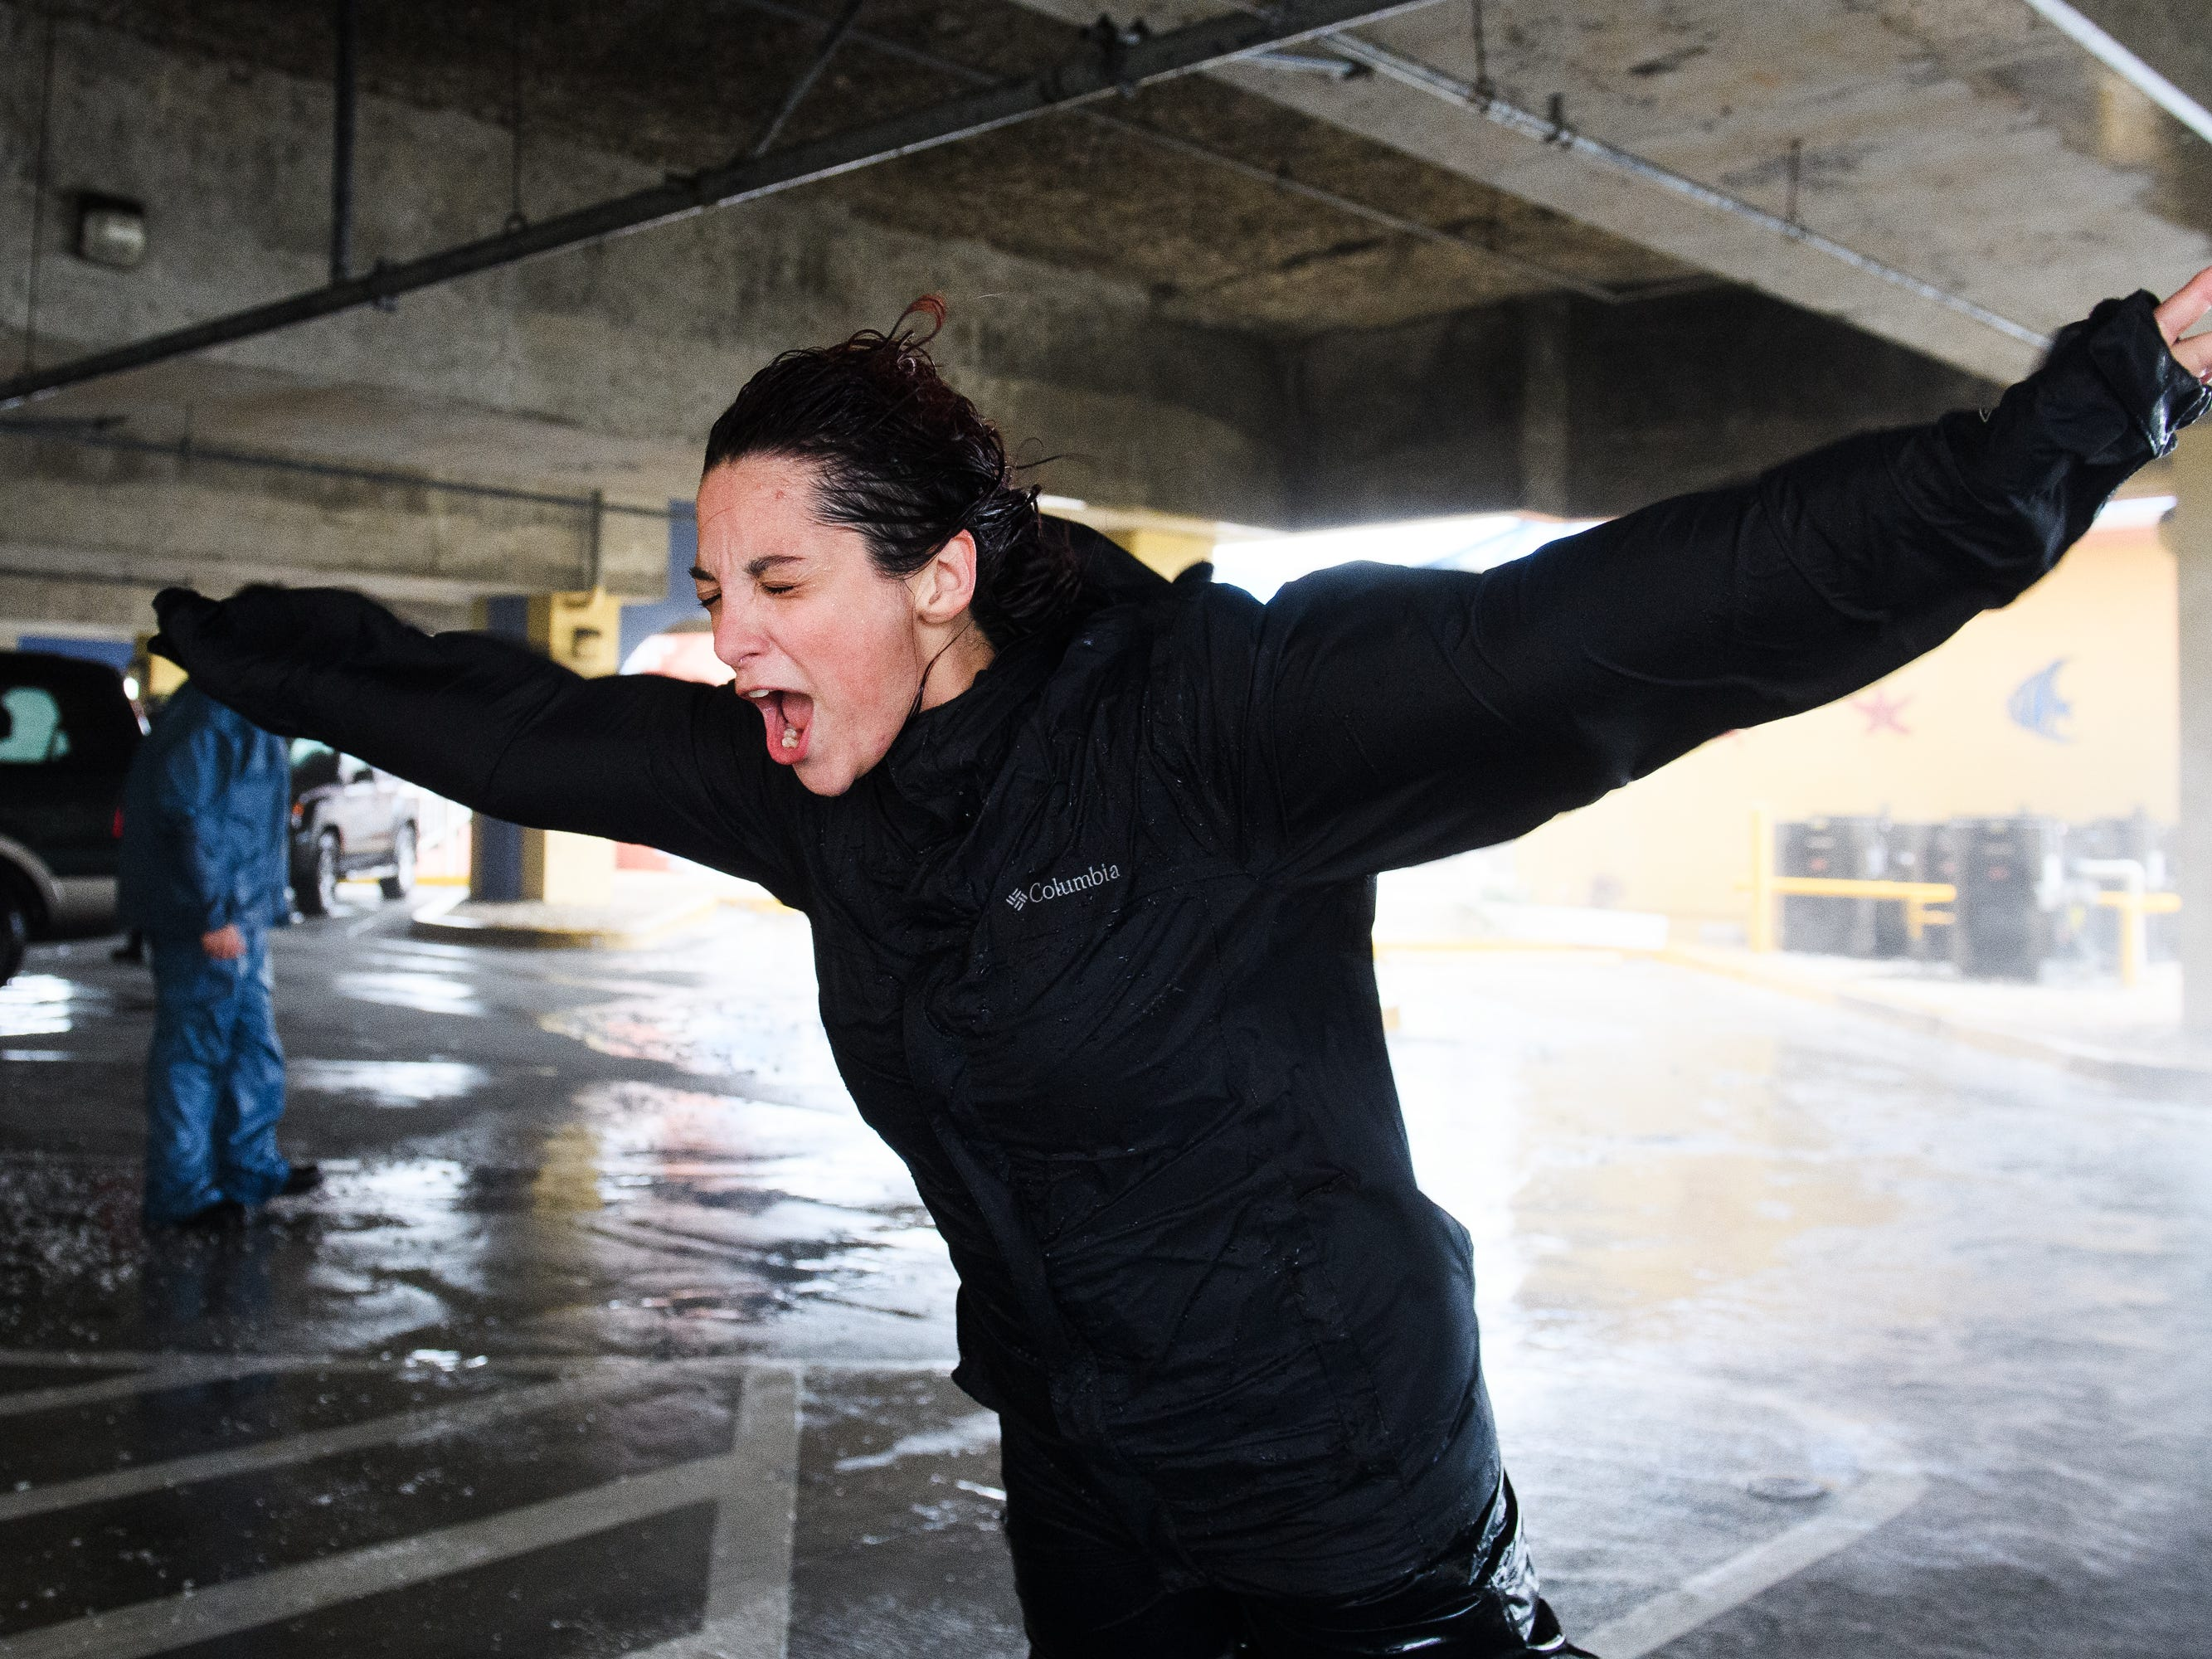 Emily Pike yells as she faces the wind caused by Hurricane Florence in a North Myrtle Beach parking garage on Friday, Sept. 14, 2018.